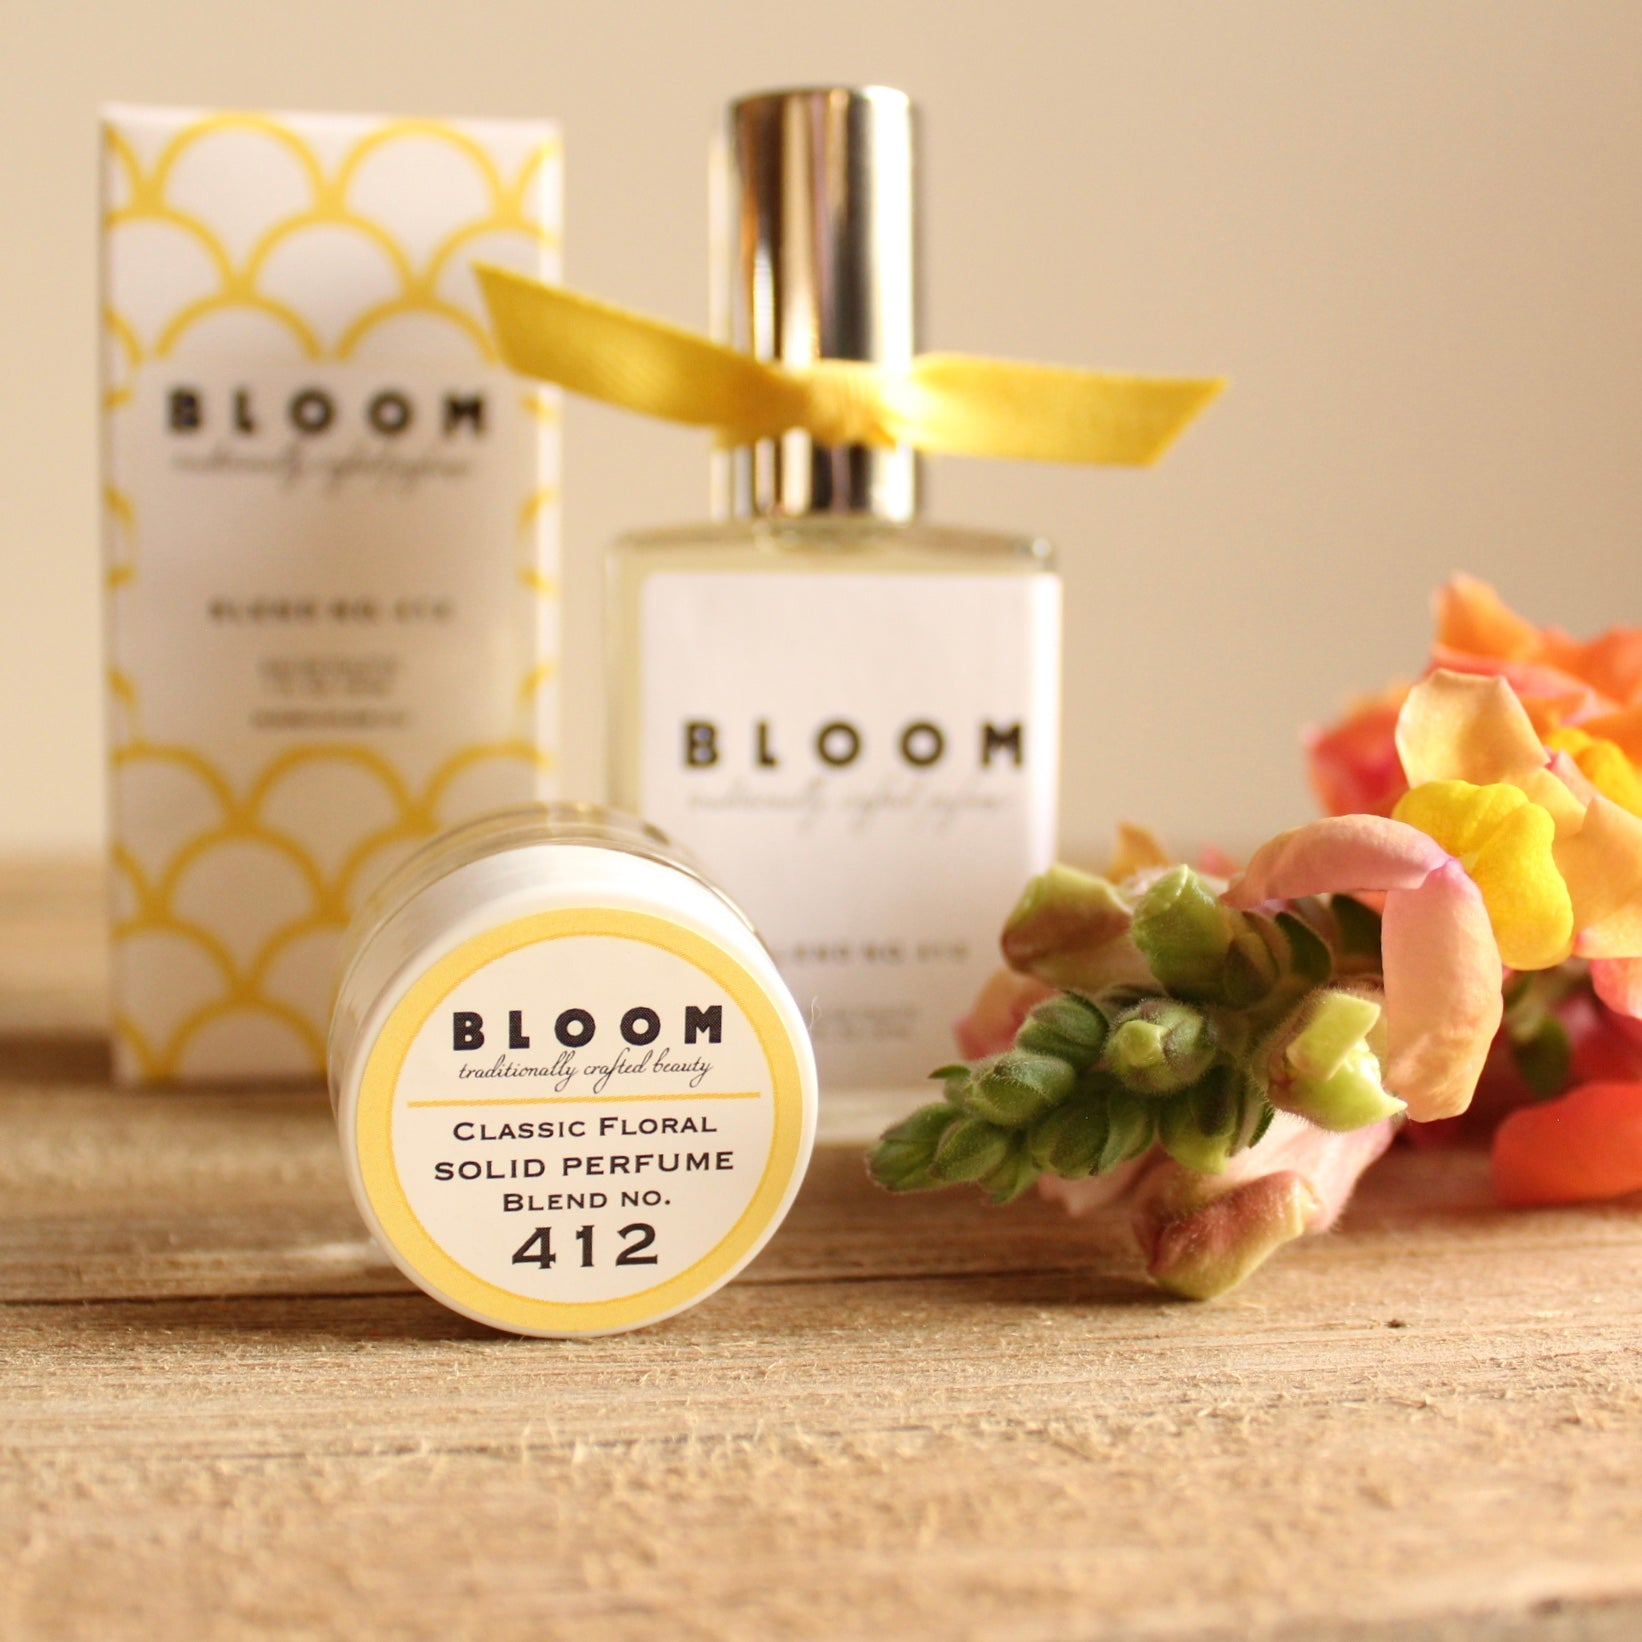 Bloom Perfume - Blend no. 412